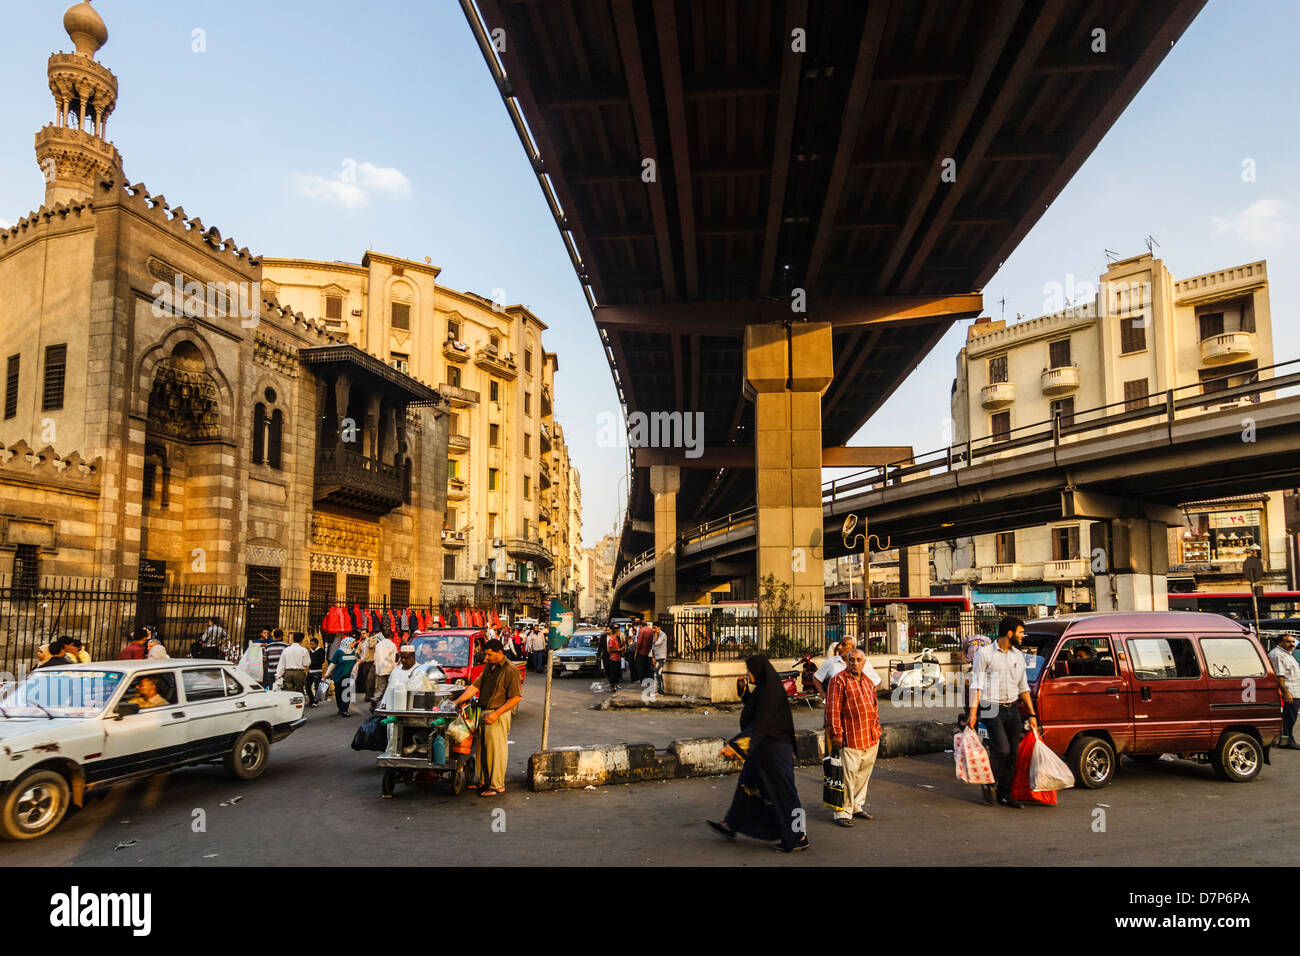 Flyover and mosque in Cairo, Egypt. Midan Ataba marks the point where Downtown and Islamic Cairo meet. - Stock Image